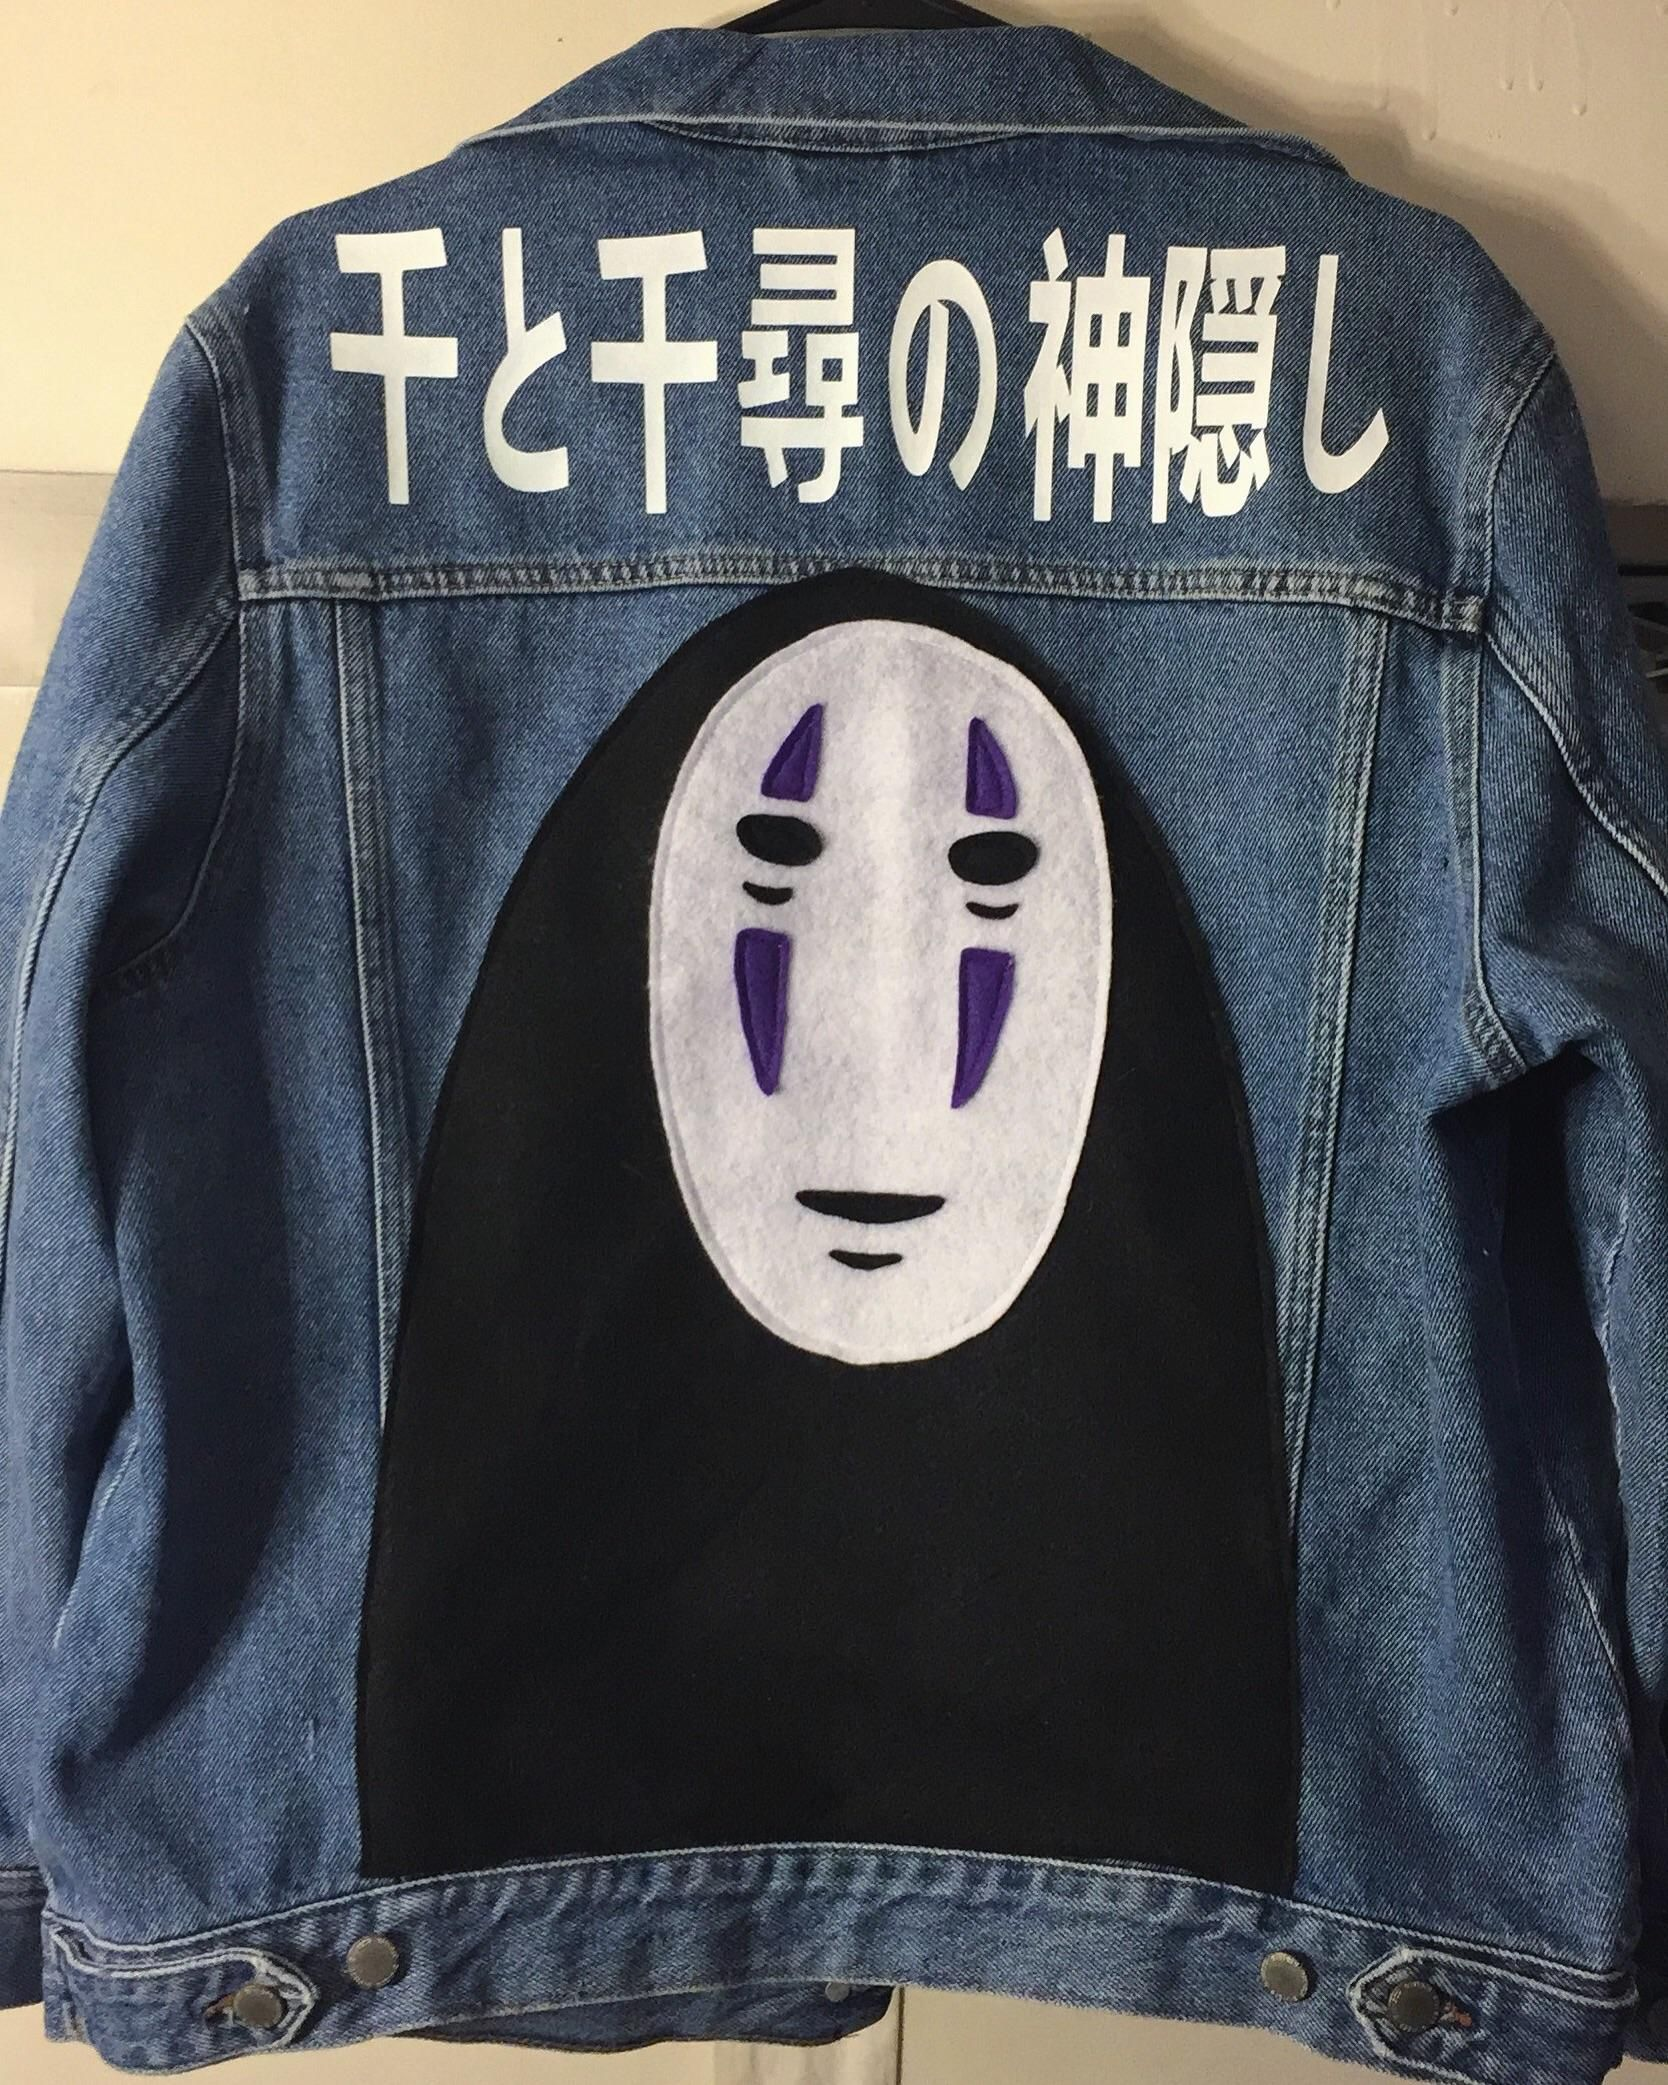 [ART] Customized this jacket for a friend what do yall